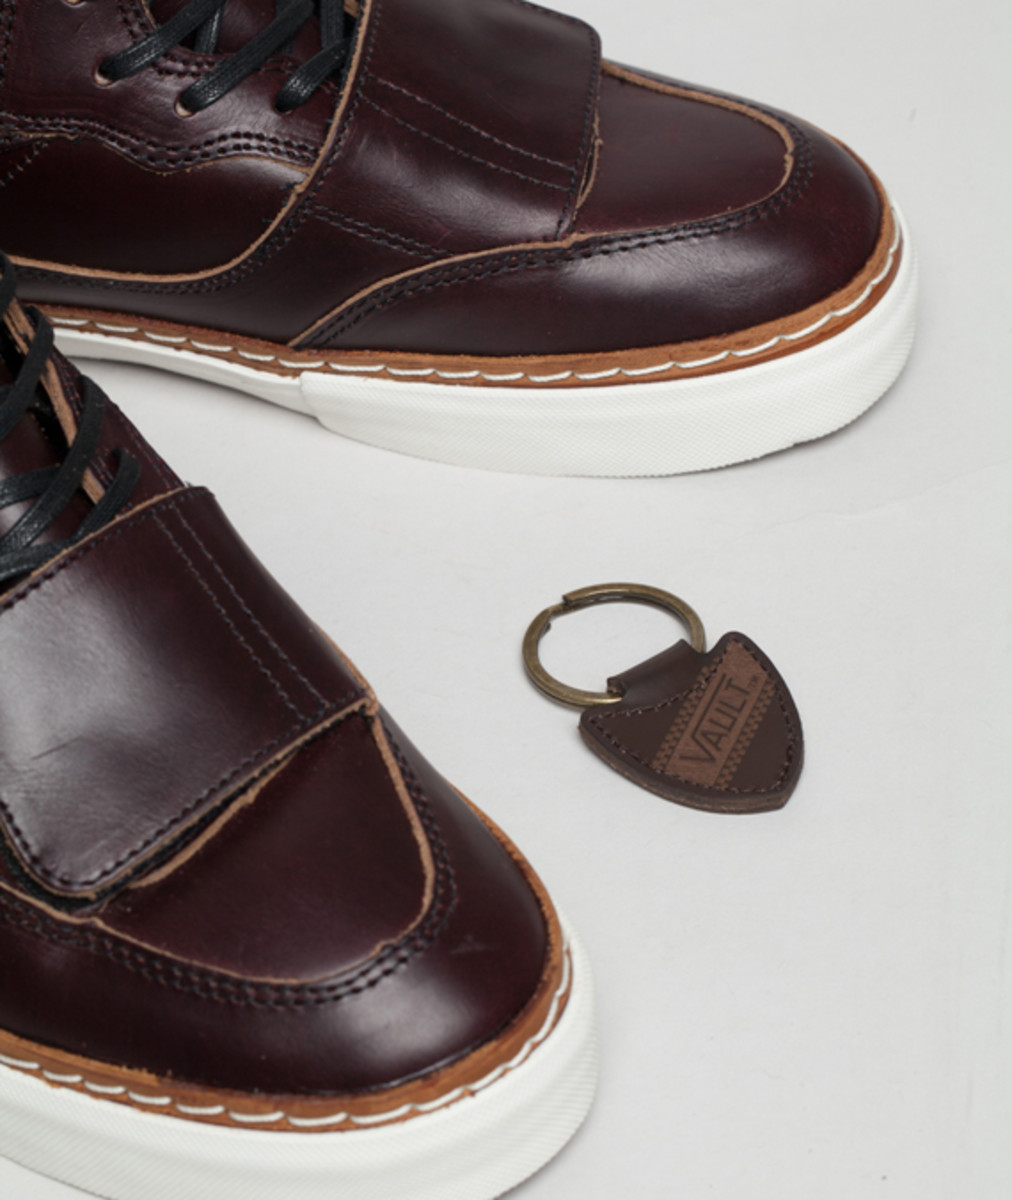 horween-leather-vans-mt-edition-decon-lx-09